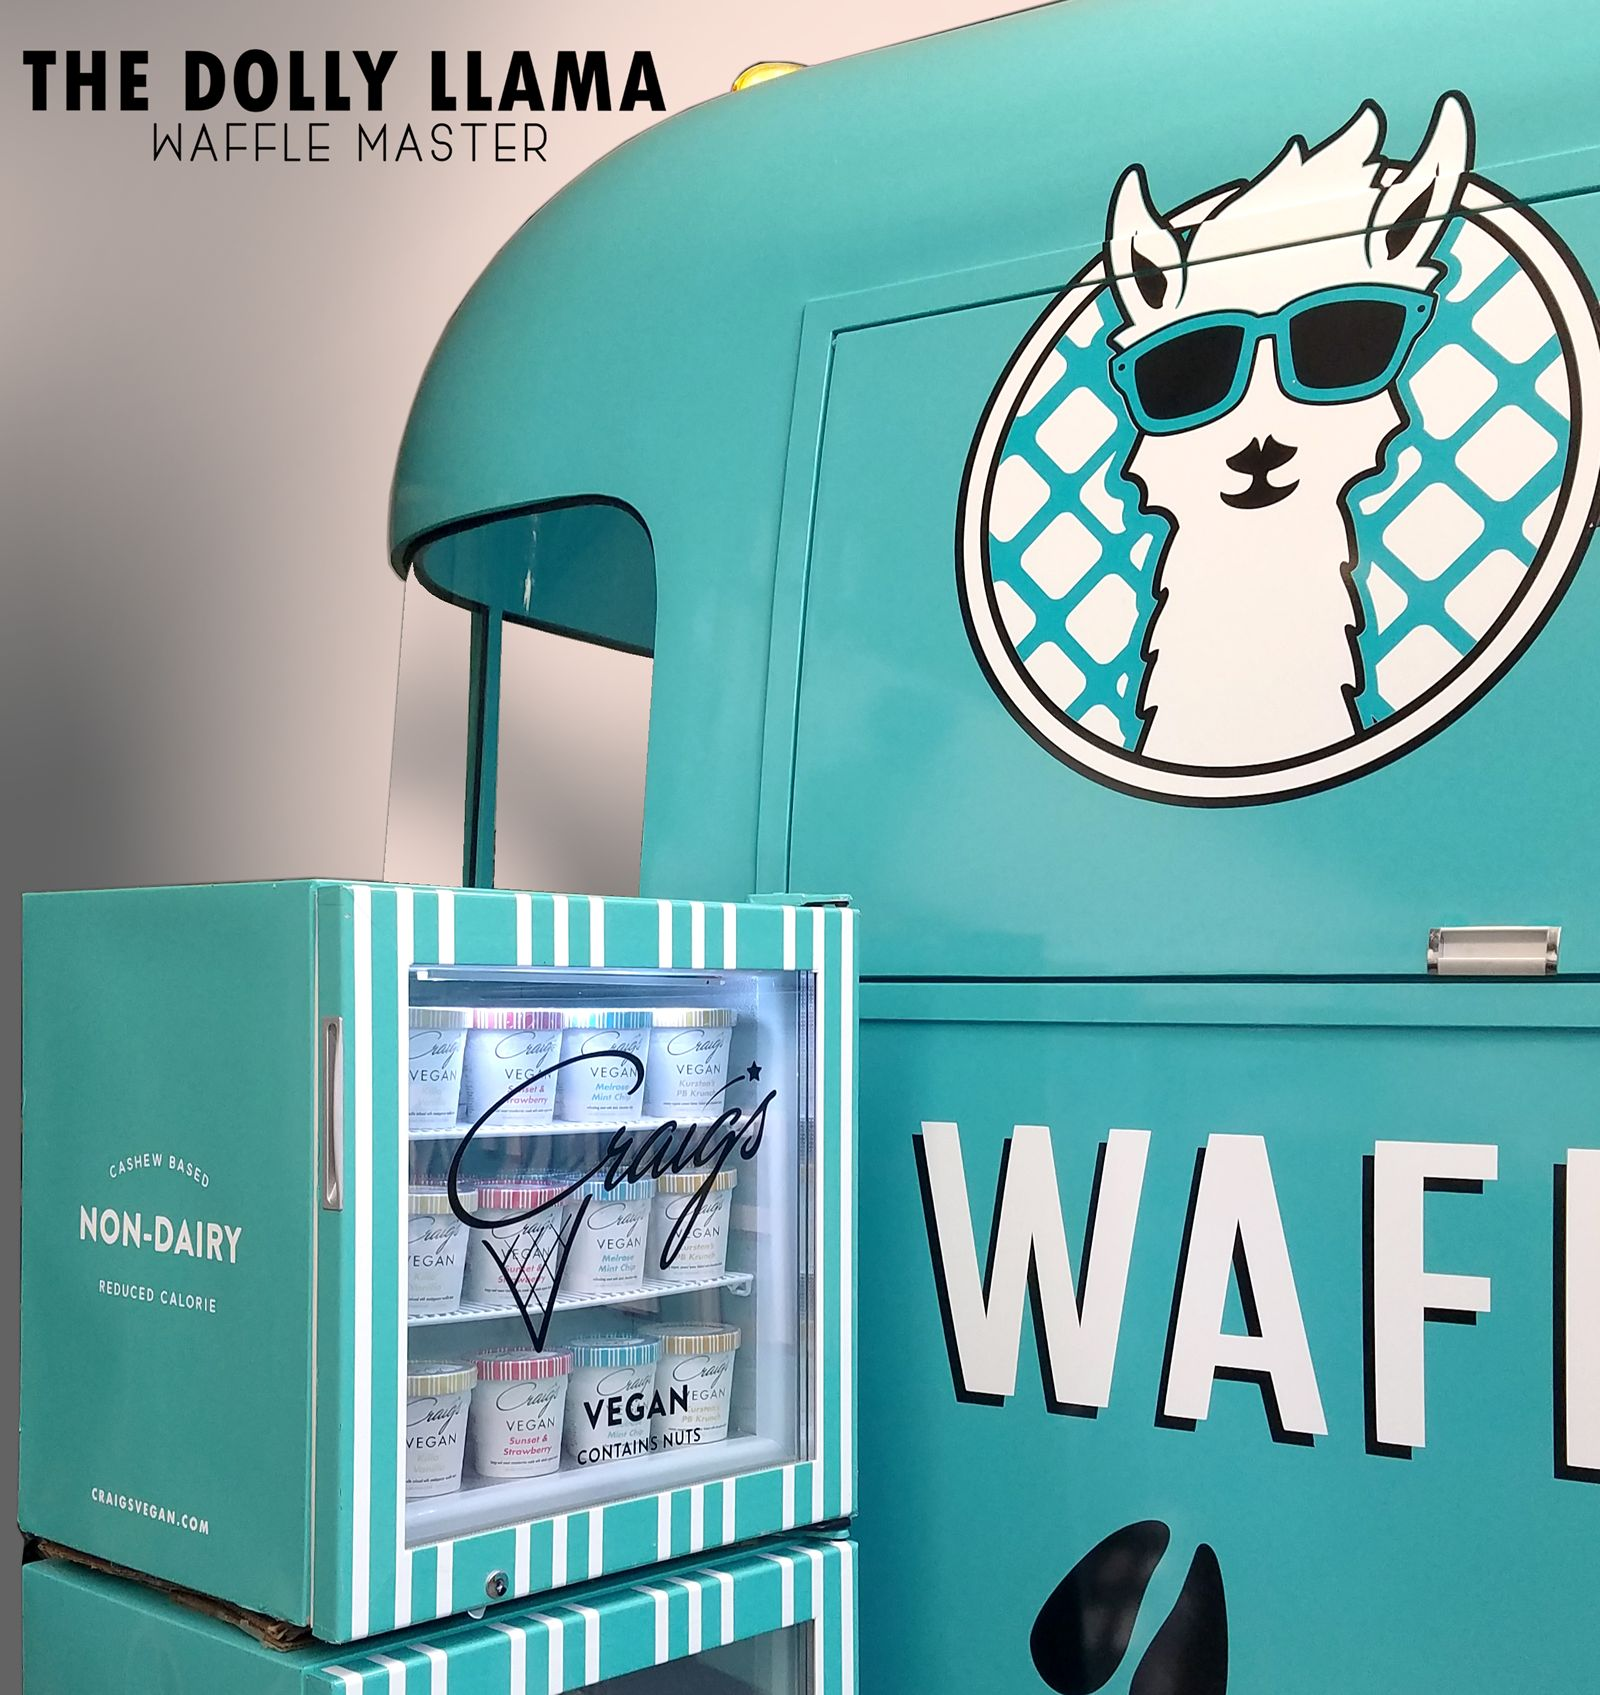 The Dolly Llama introduces new vegan-friendly desserts, four new vegan ice cream flavors, and pints to-go through new partnership with Los Angeles-based Craig's Vegan.